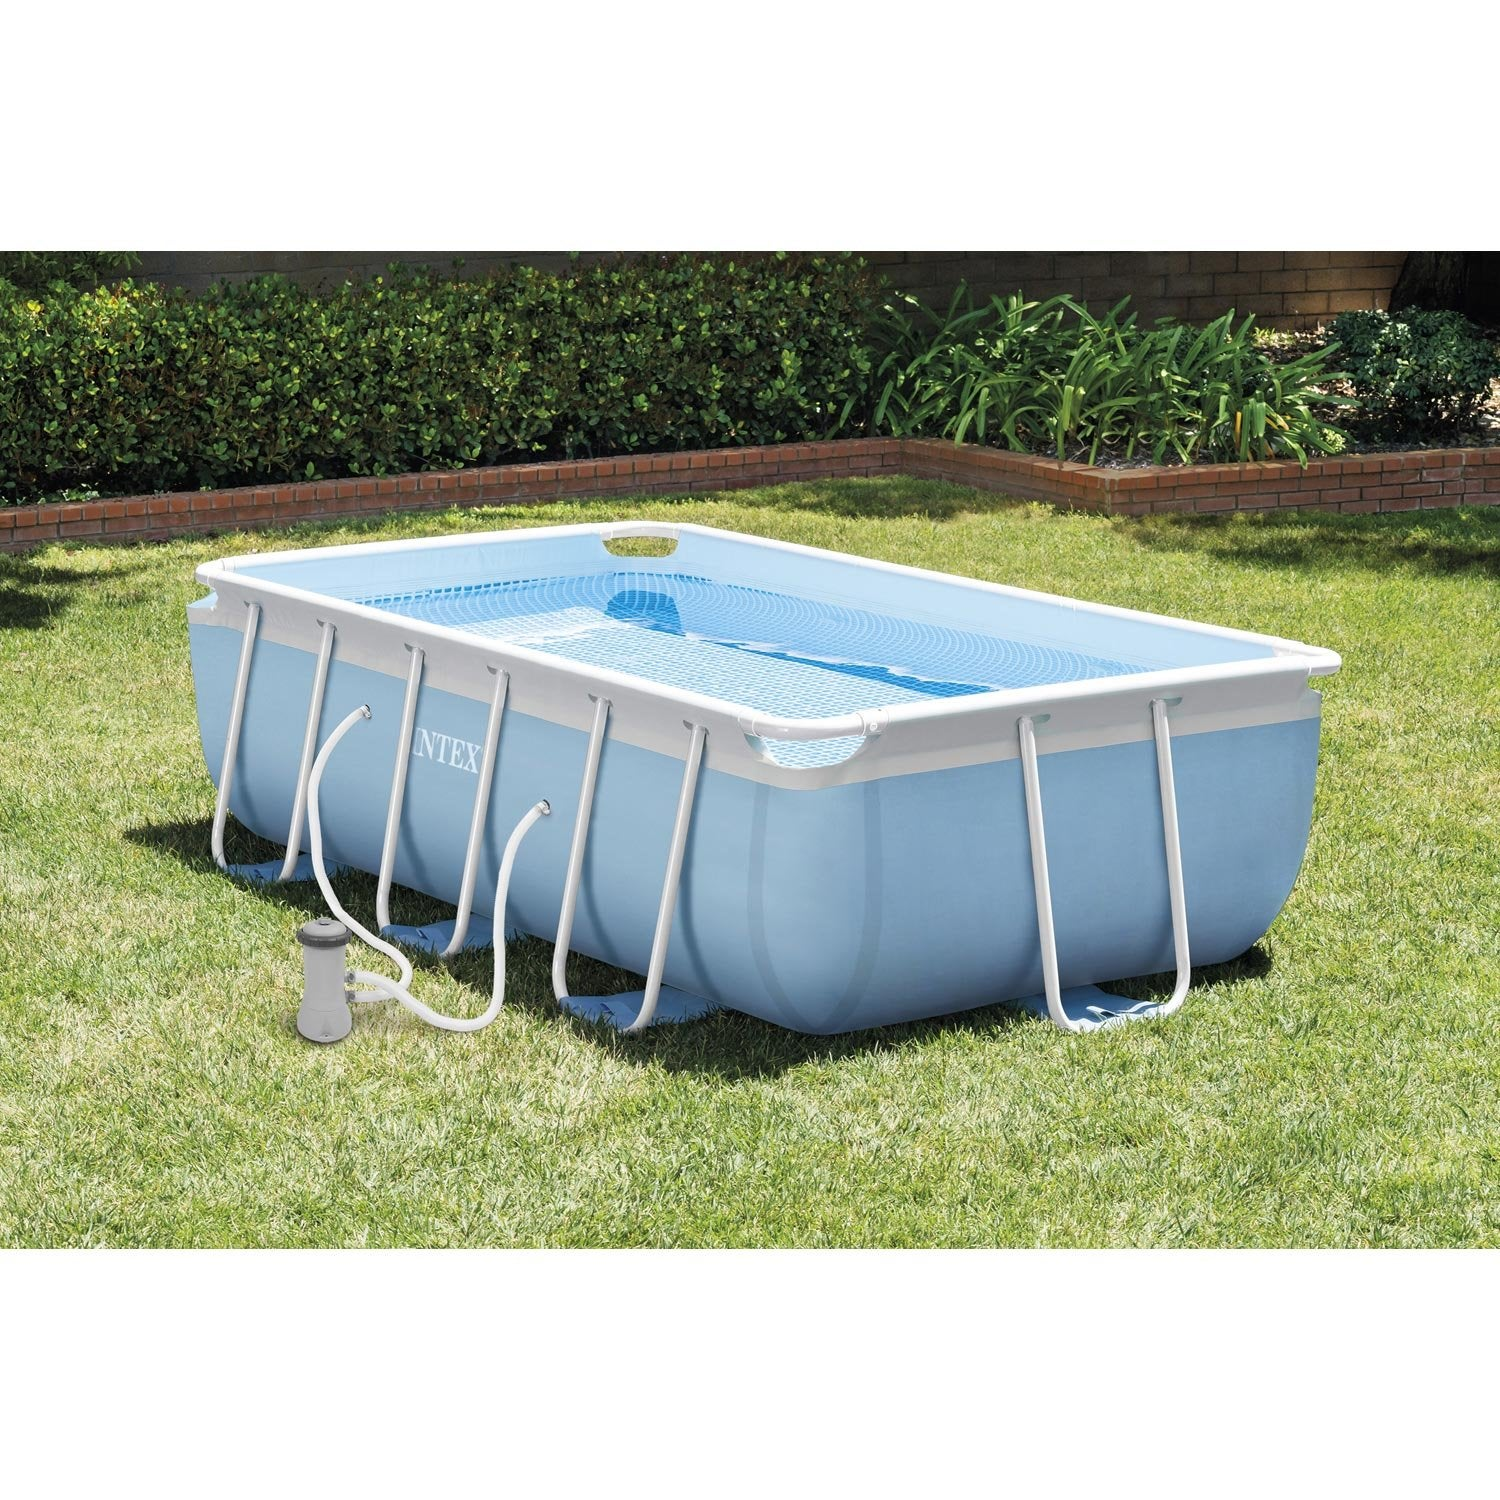 Piscine hors sol autoportante tubulaire intex l 3 4 x l 2 for Piscine hors sol perpignan